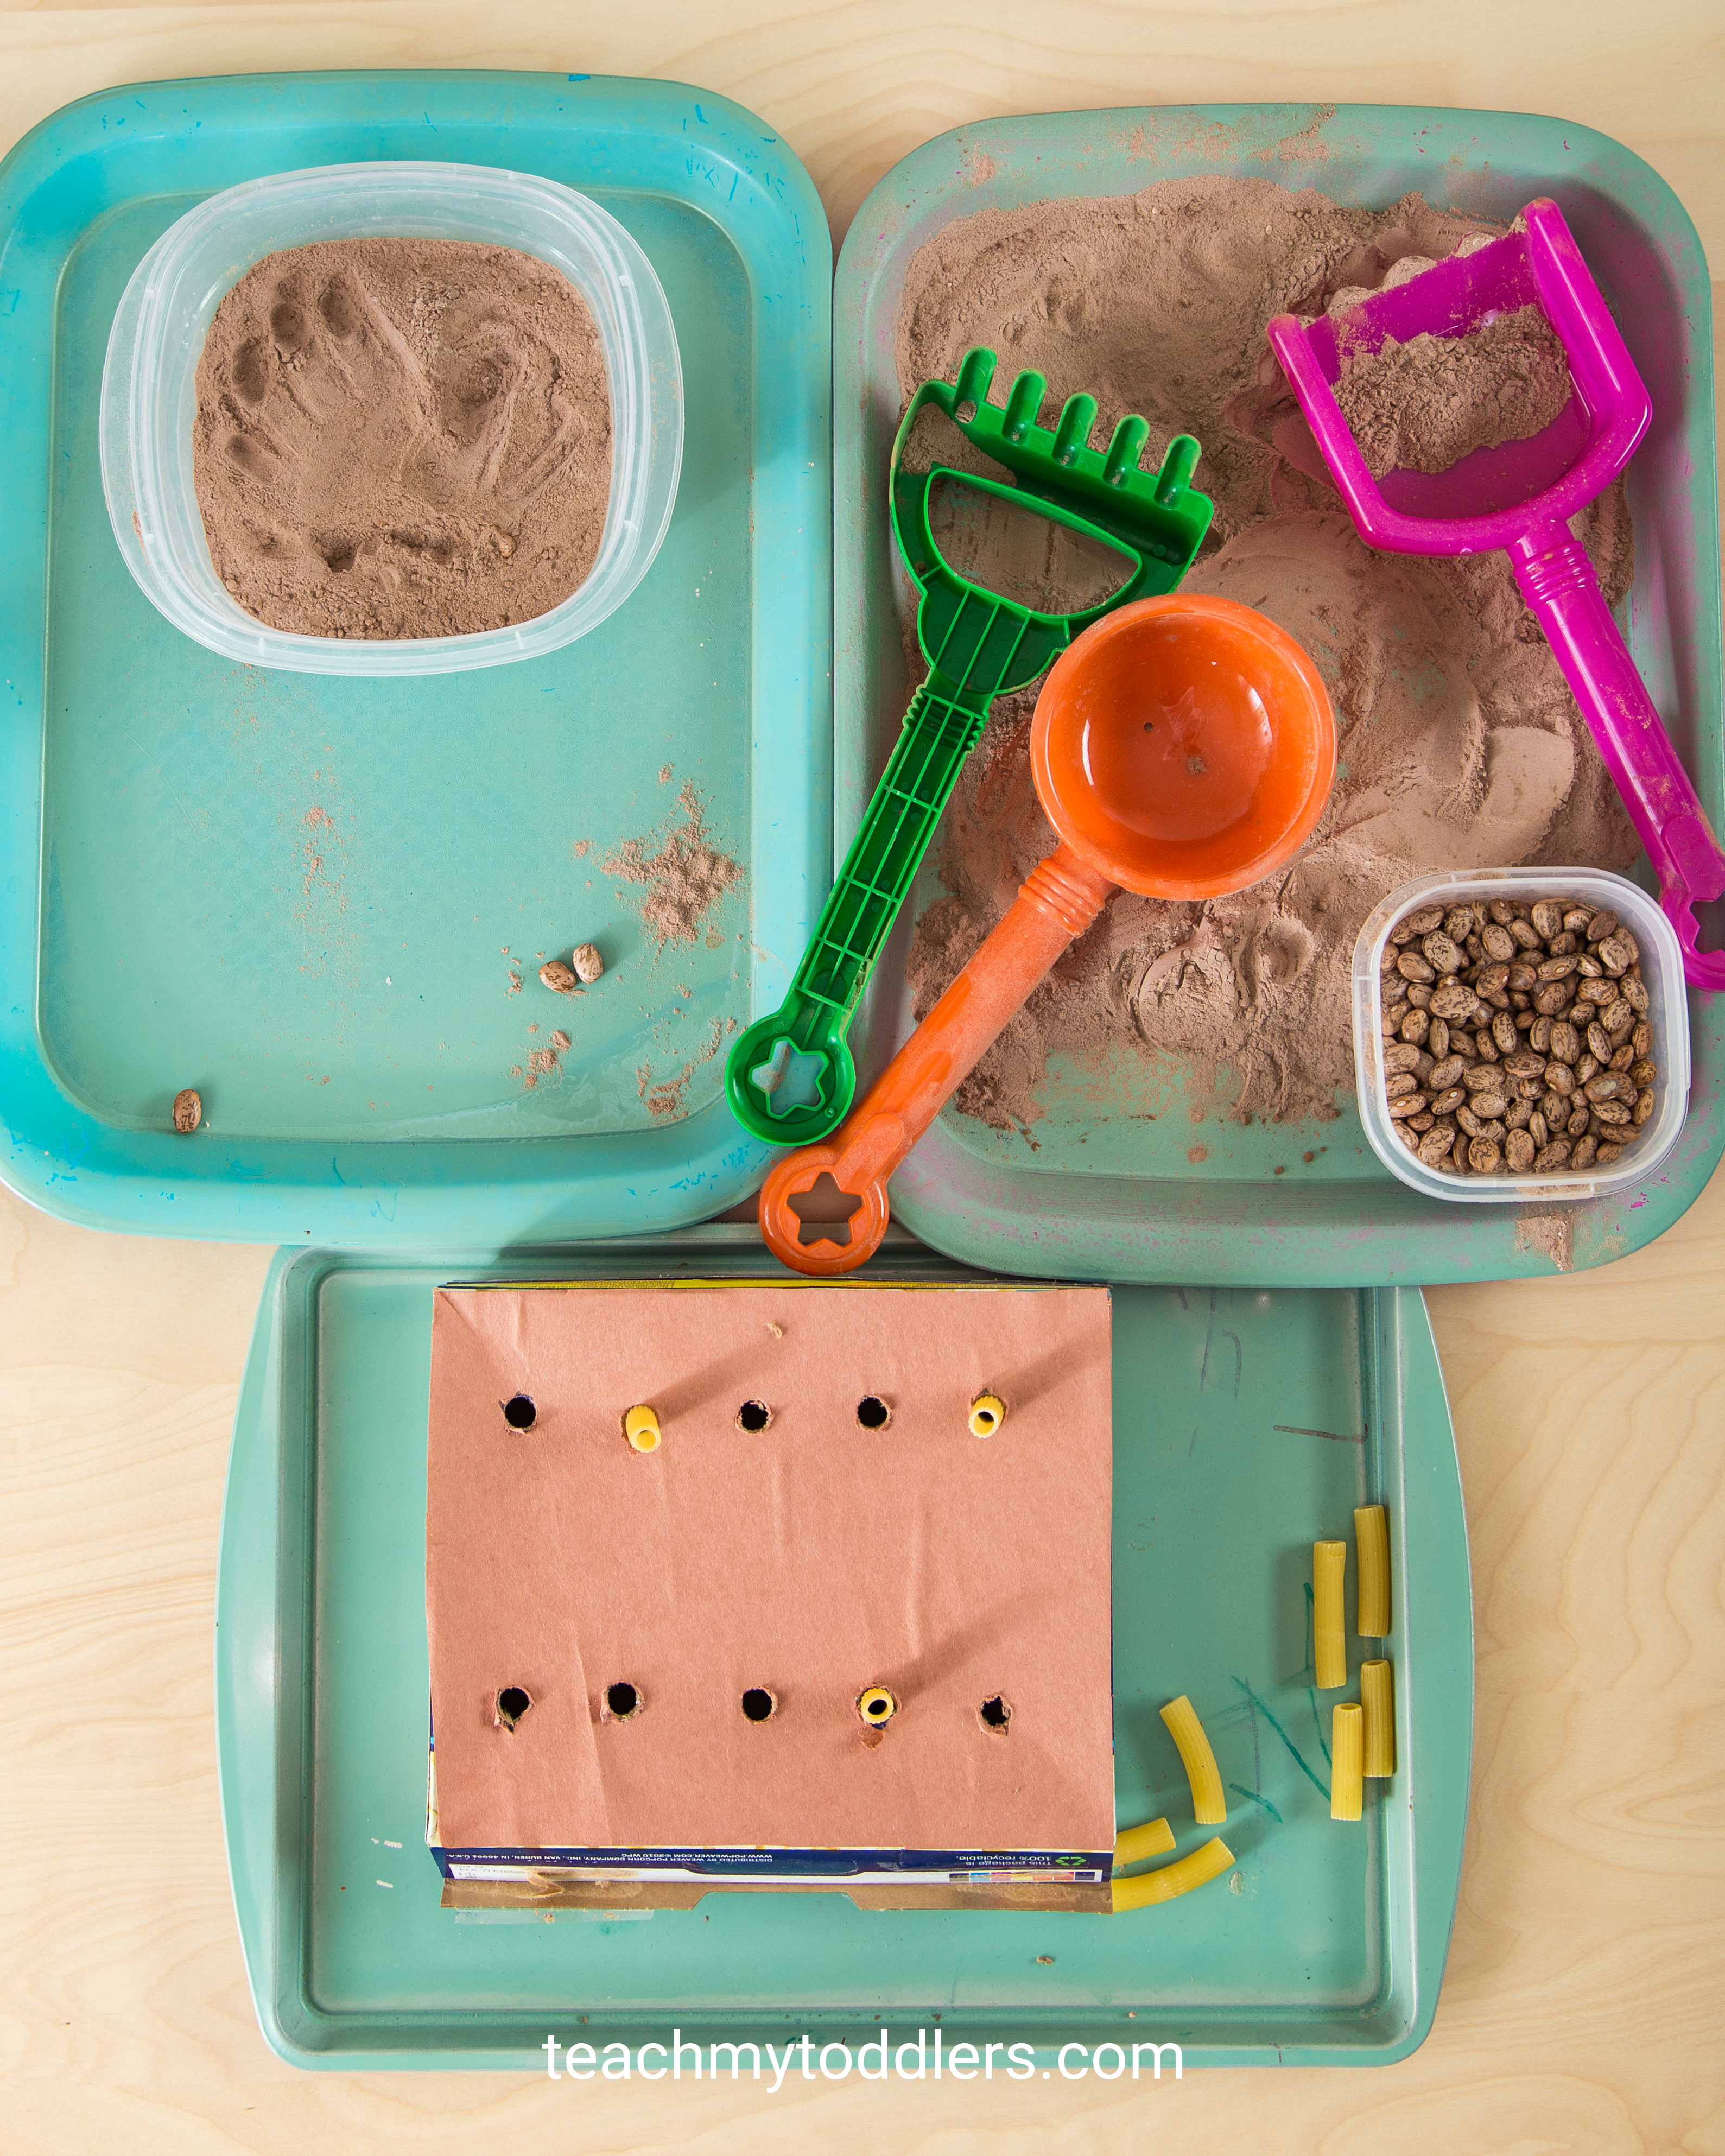 Use these unique garden activities to teach toddlers about gardening